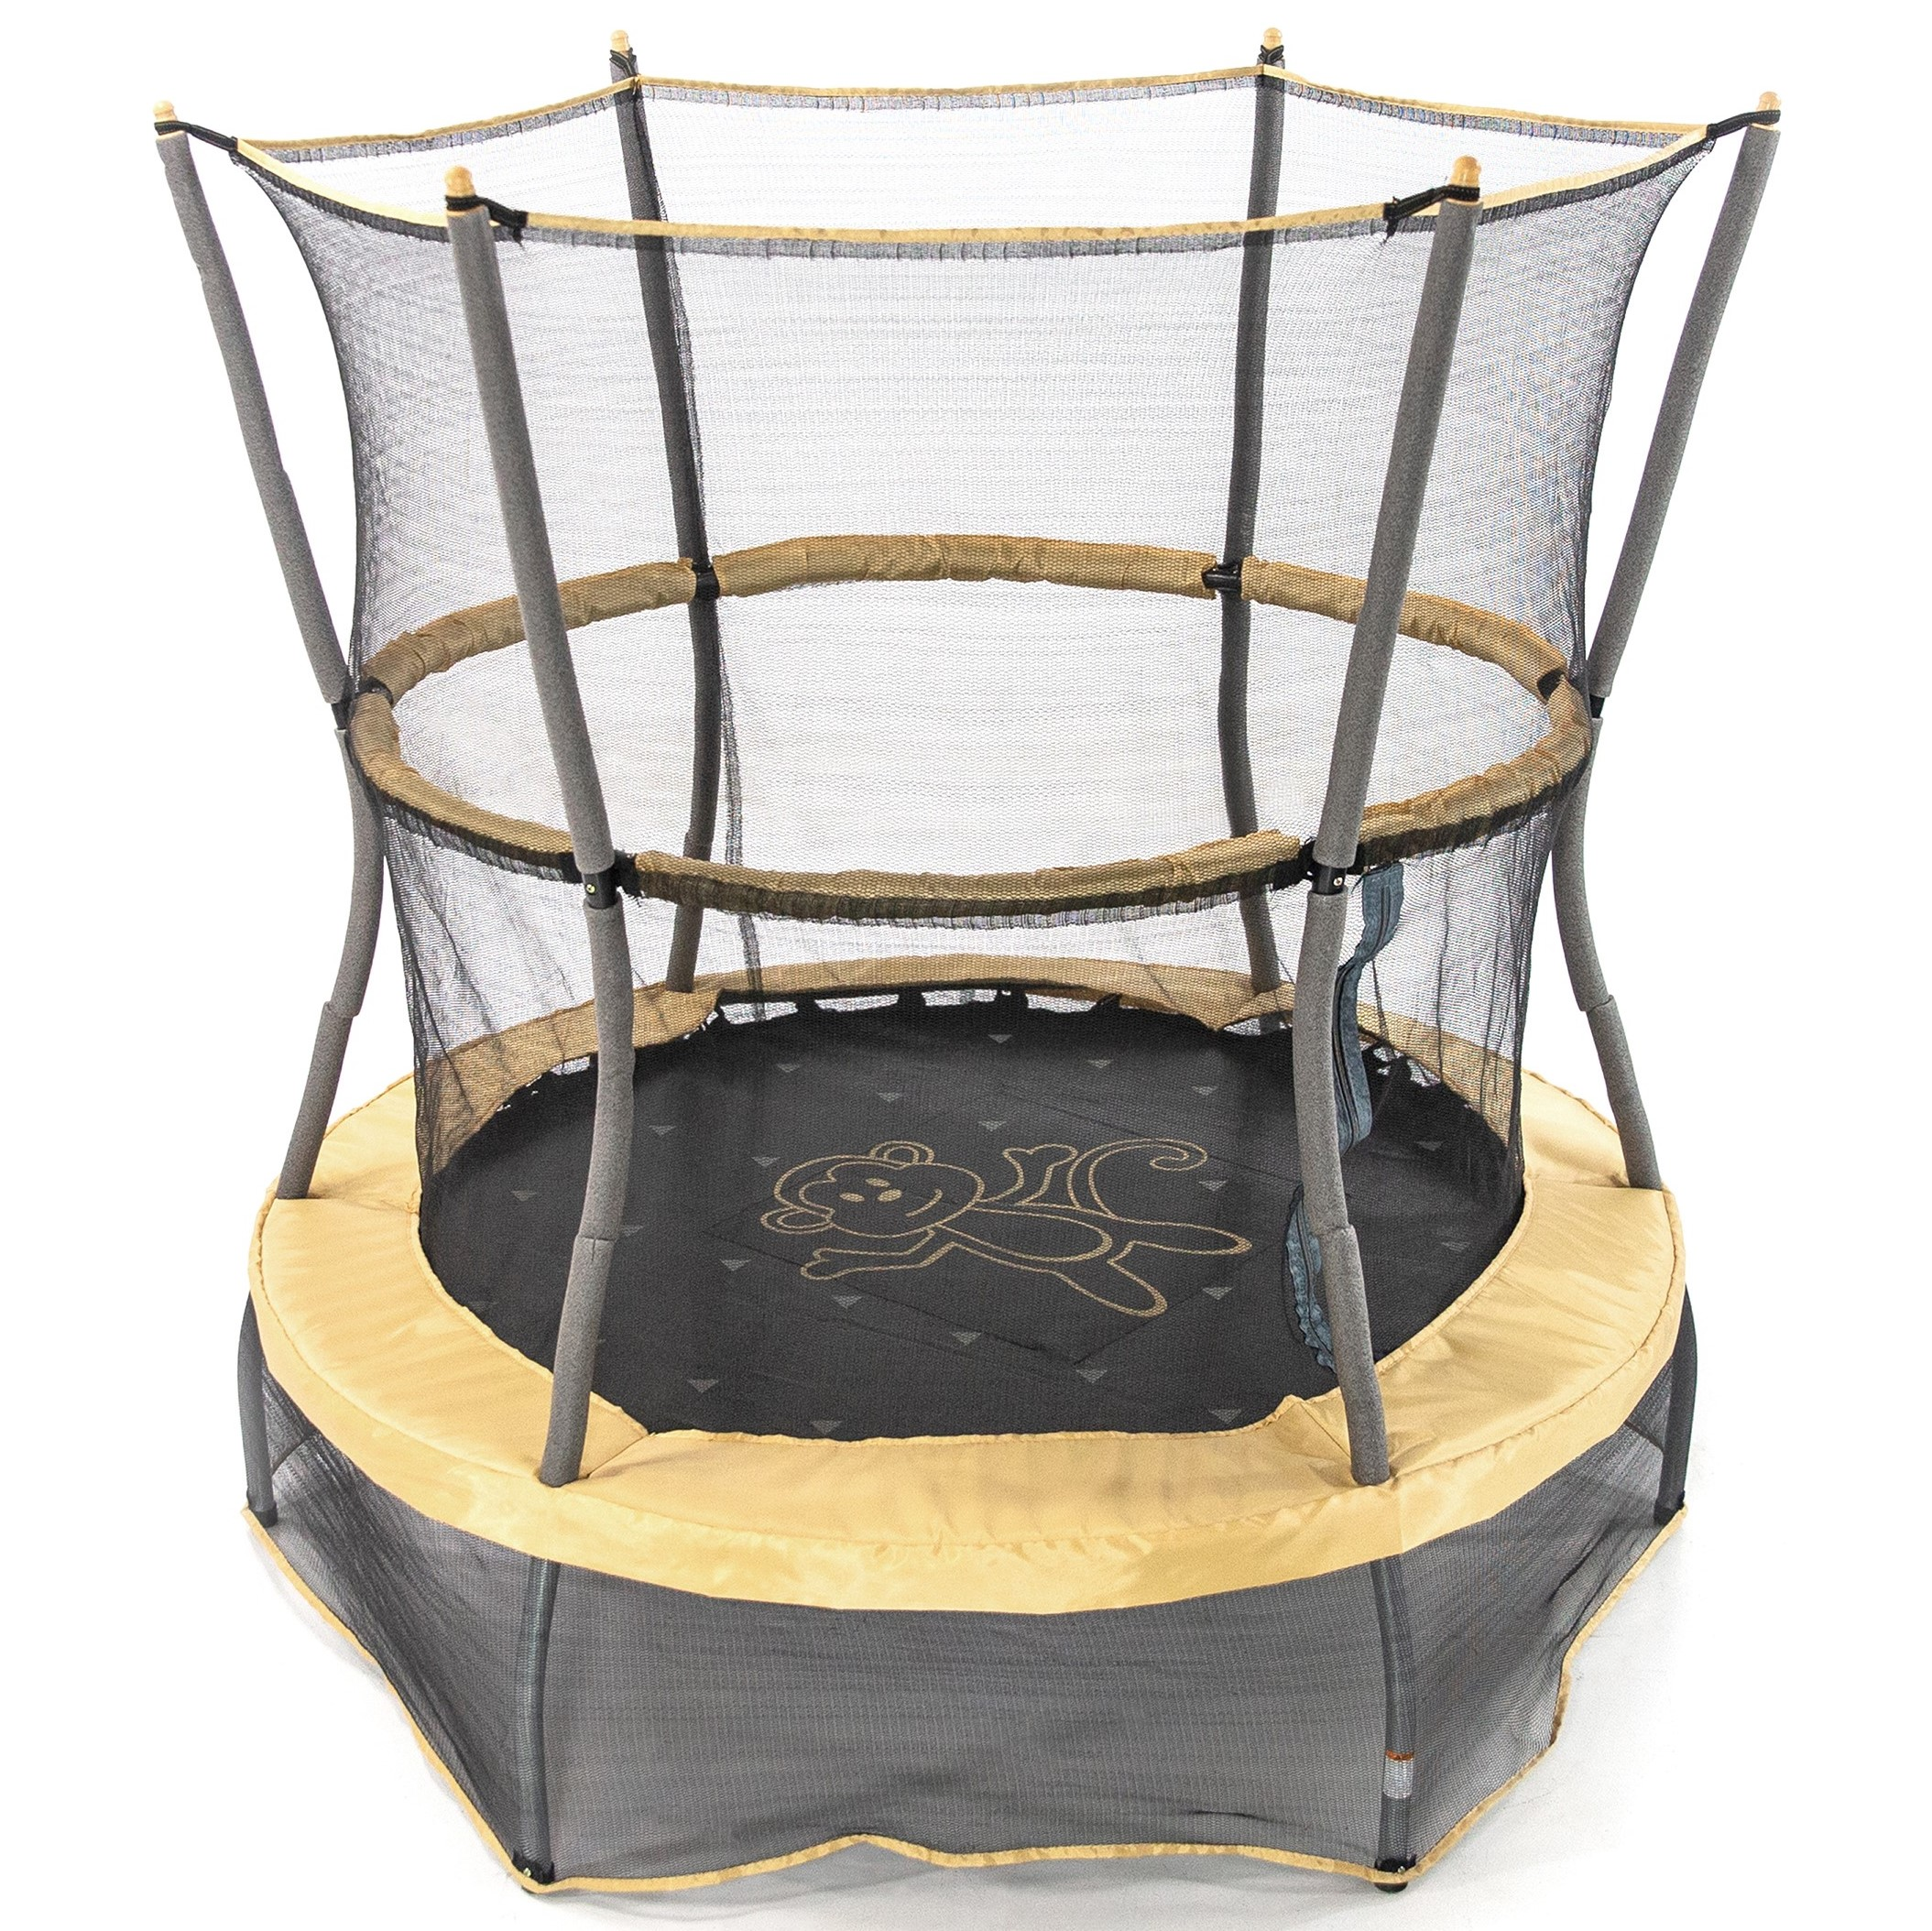 Skywalker Trampolines 55-Inch Bounce-N-Learn Trampoline with Enclosure and Sound